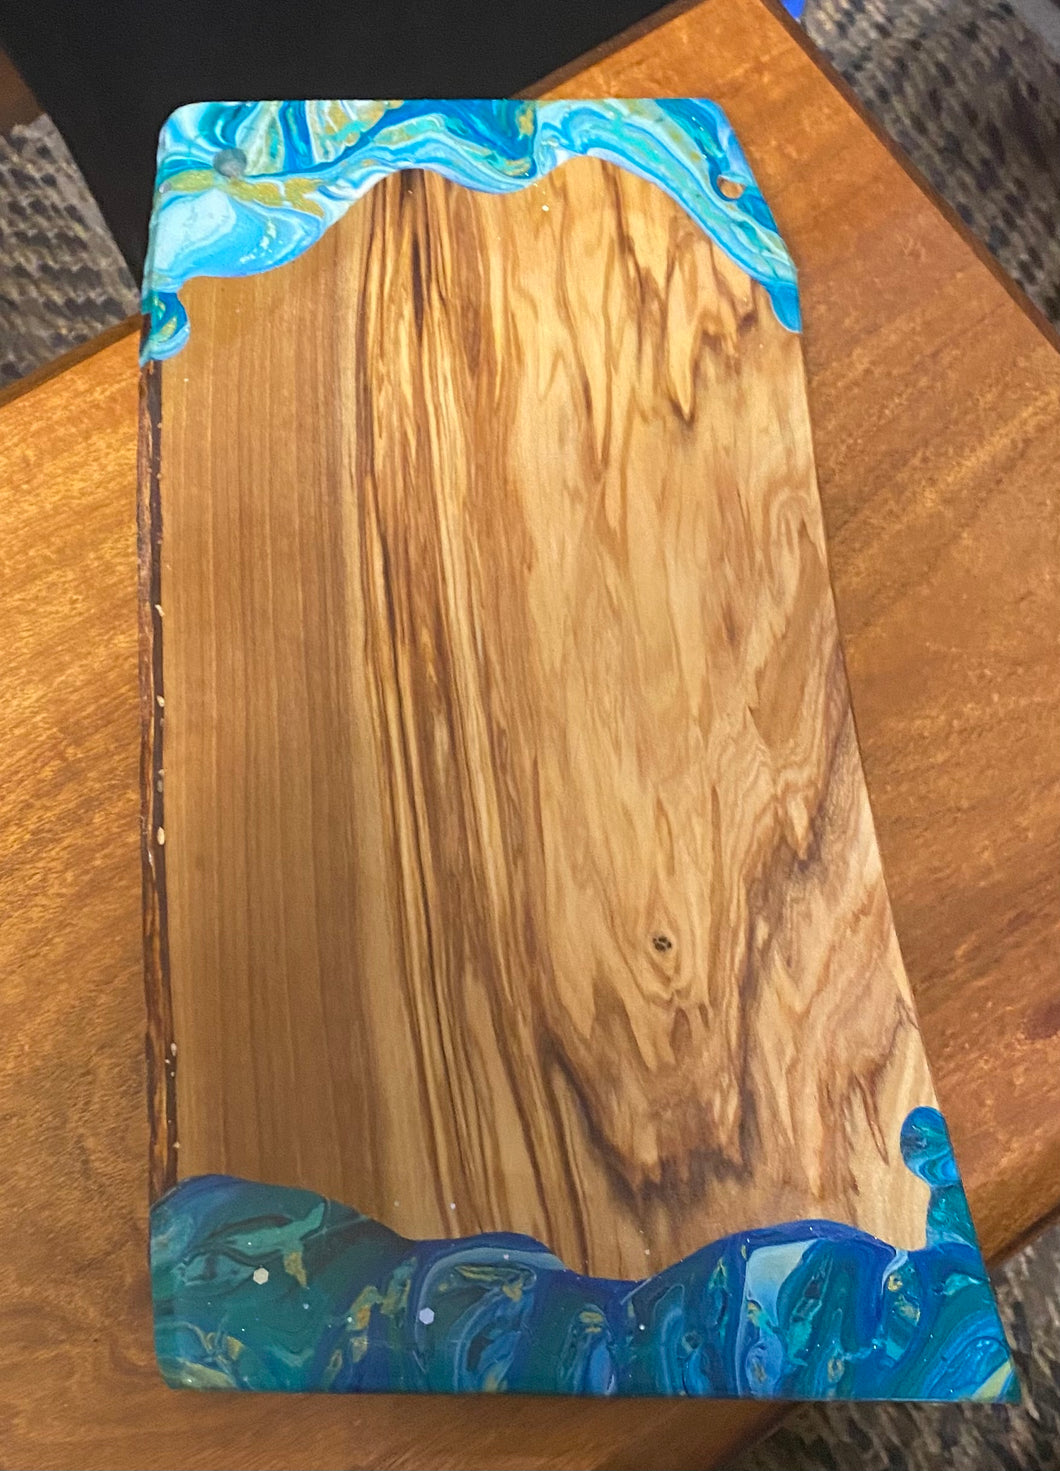 Cheese board made from olive wood